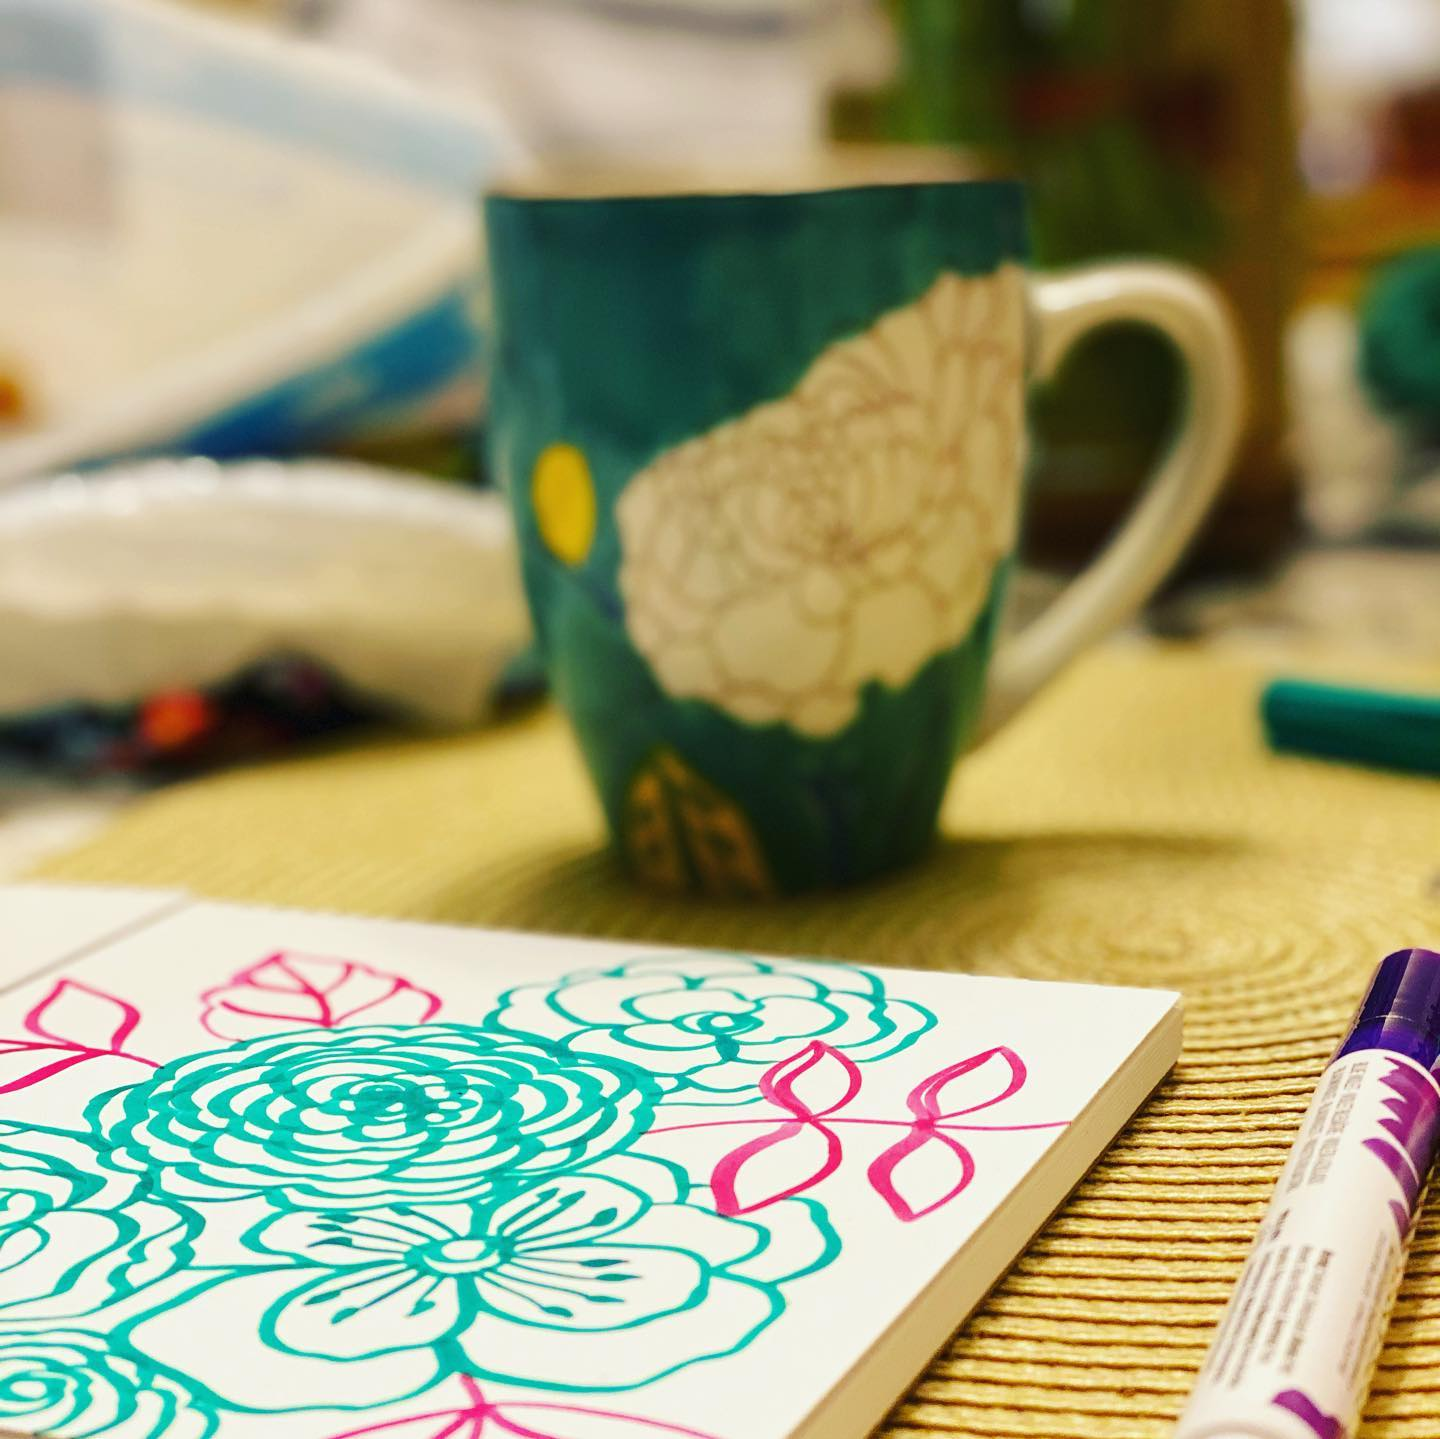 I often end my day with a hot cup of chamomile tea and a few doodles on the side.  How about pink leaves and some green flowers?